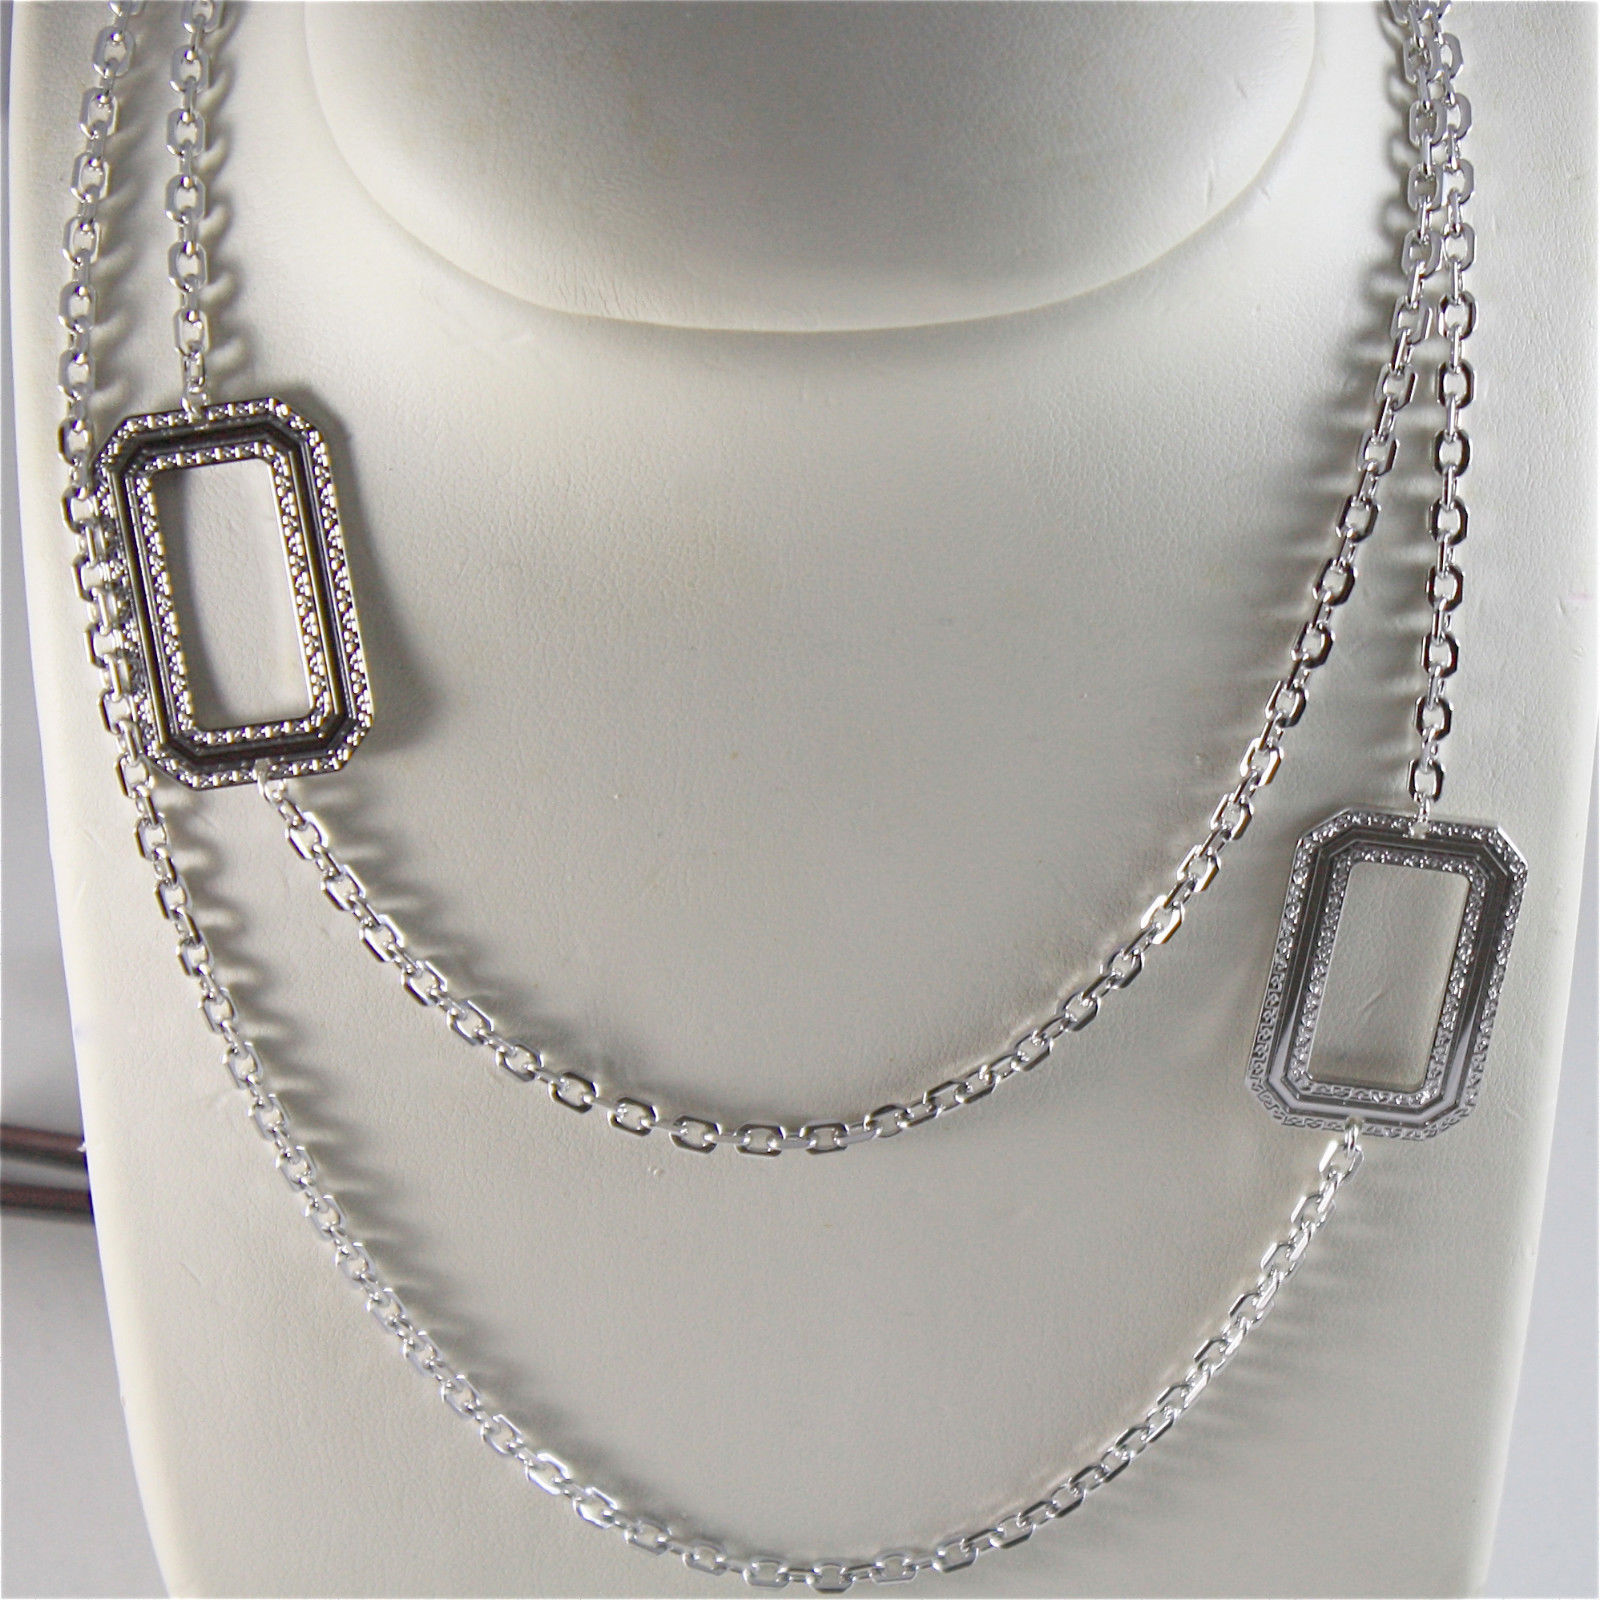 WHITE GOLD PLATED BRONZE REBECCA NECKLACE ELIZABETH BELKBB03 MADE IN ITALY